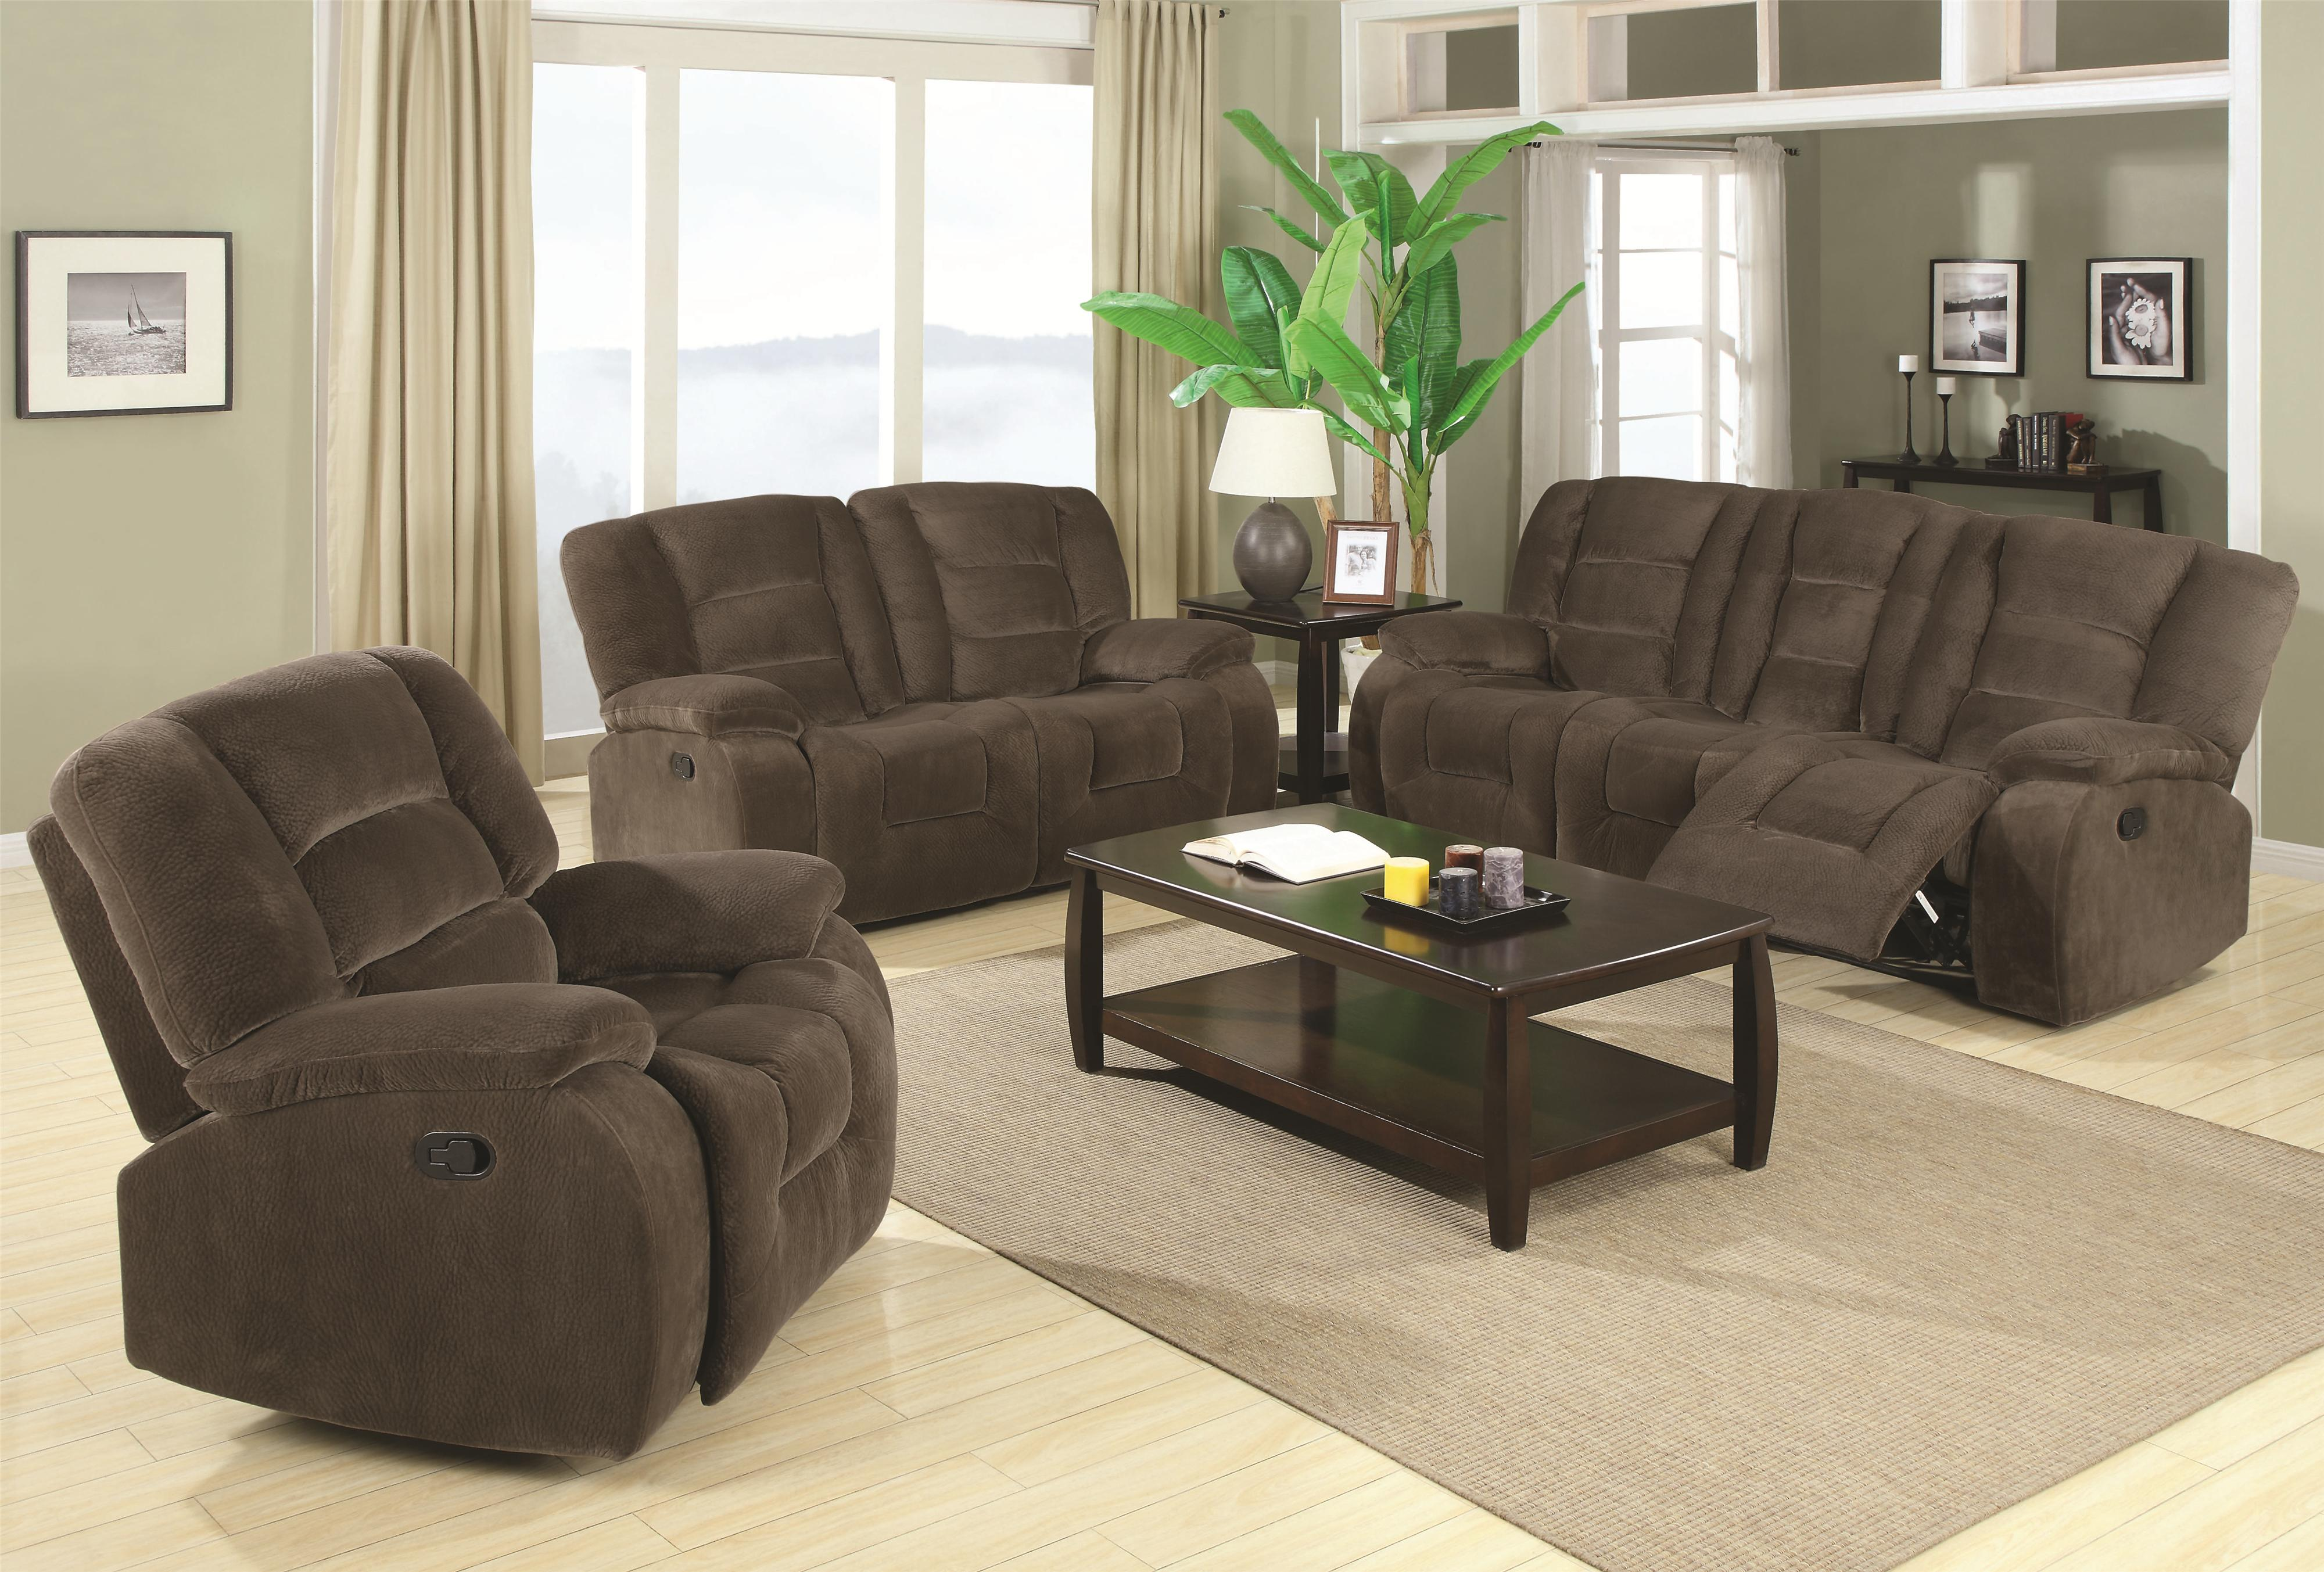 Coaster Charlie Reclining Living Room Group - Item Number: 600990 Living Room Group 1